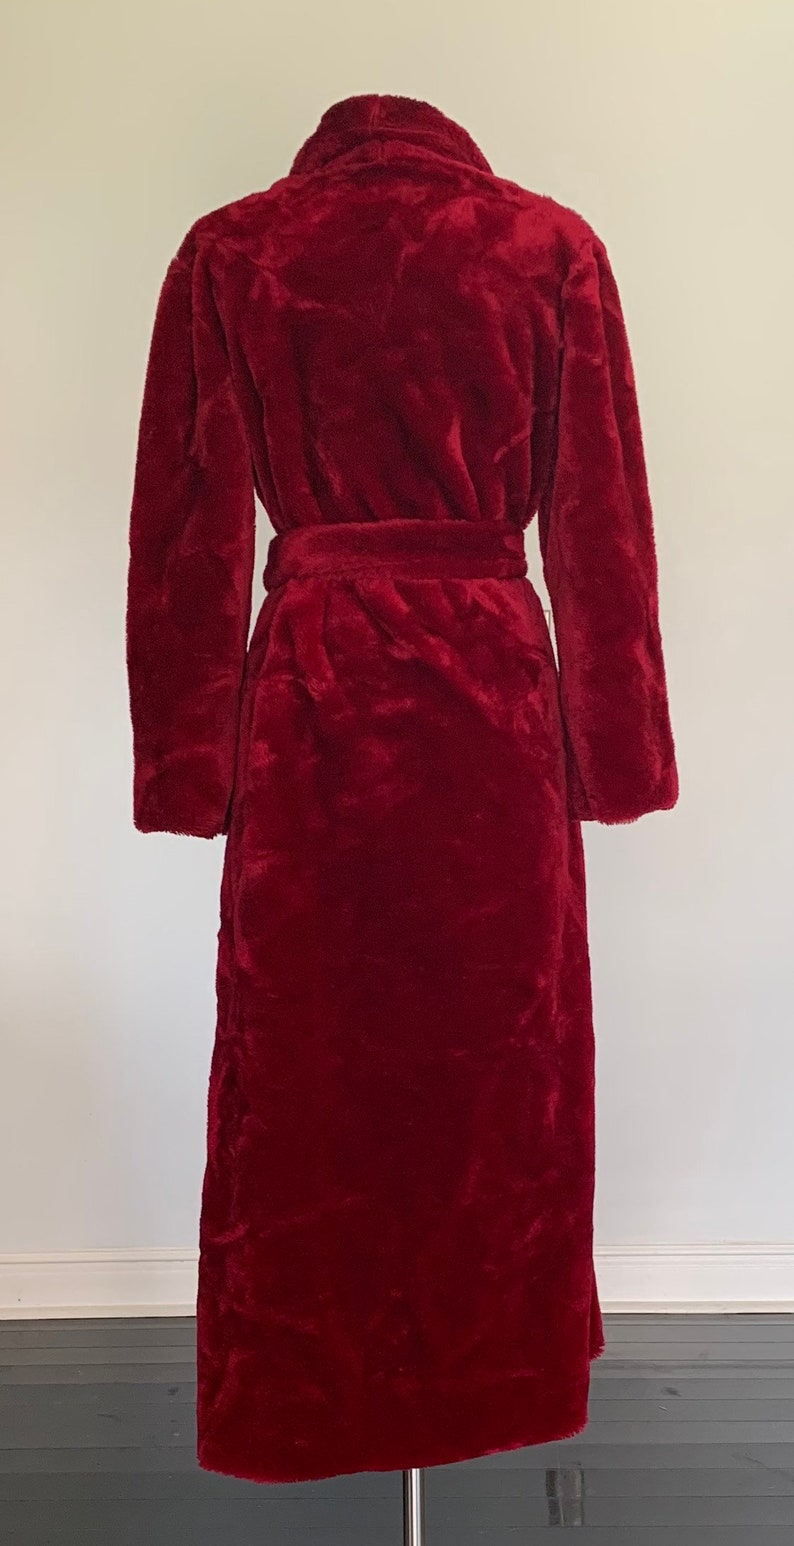 Vintage Unisex Ruby Red Plush Robe 44 Bust 1980s Soft Robe Heavy Adjustable 1970s I Appel Long Robe Fuzzy Large